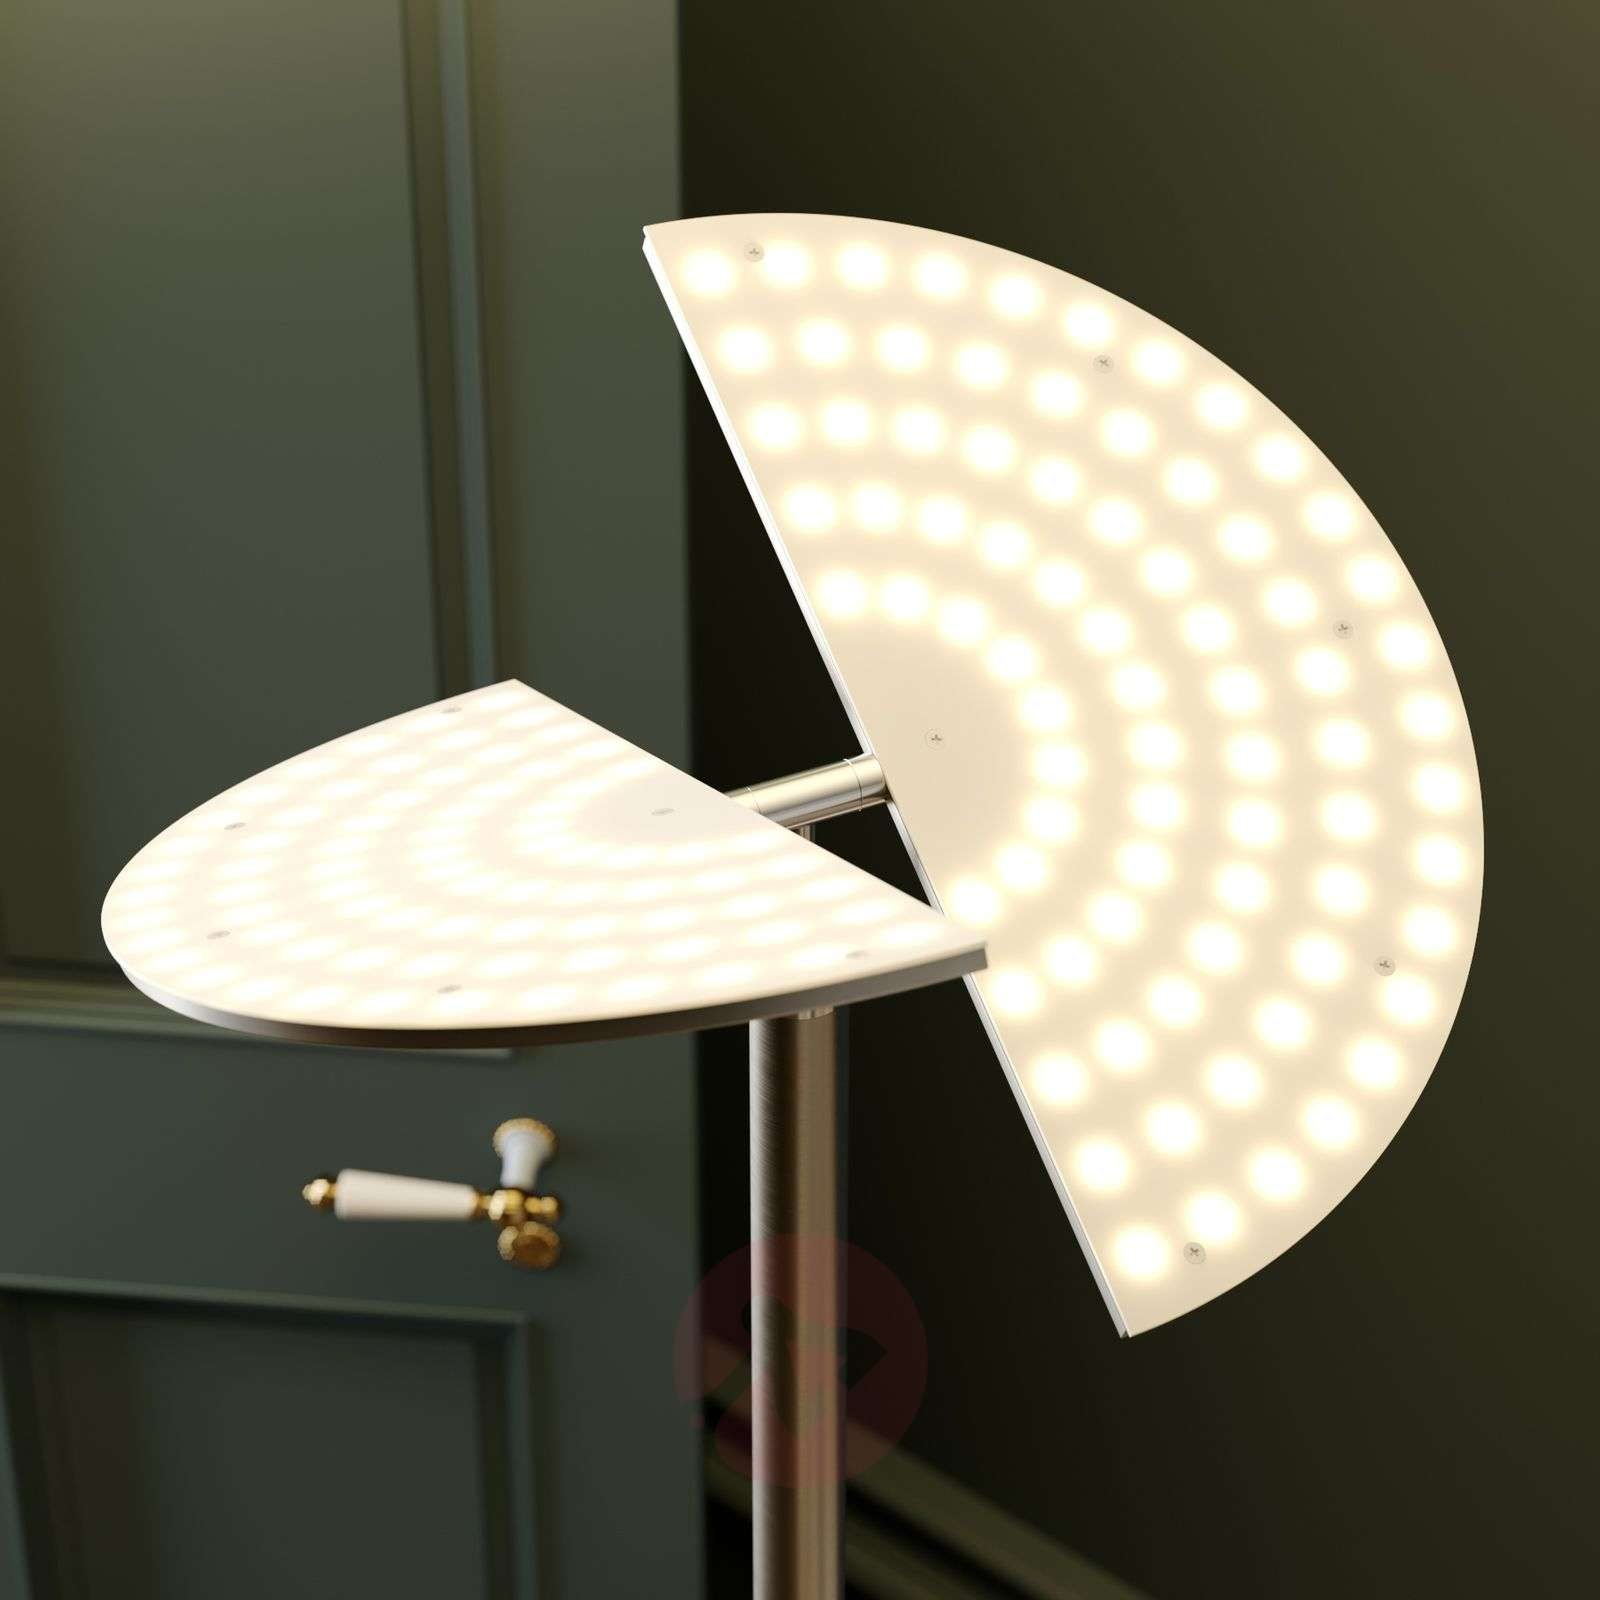 Lucande lampadaire indirect LED Joveline, nickel |